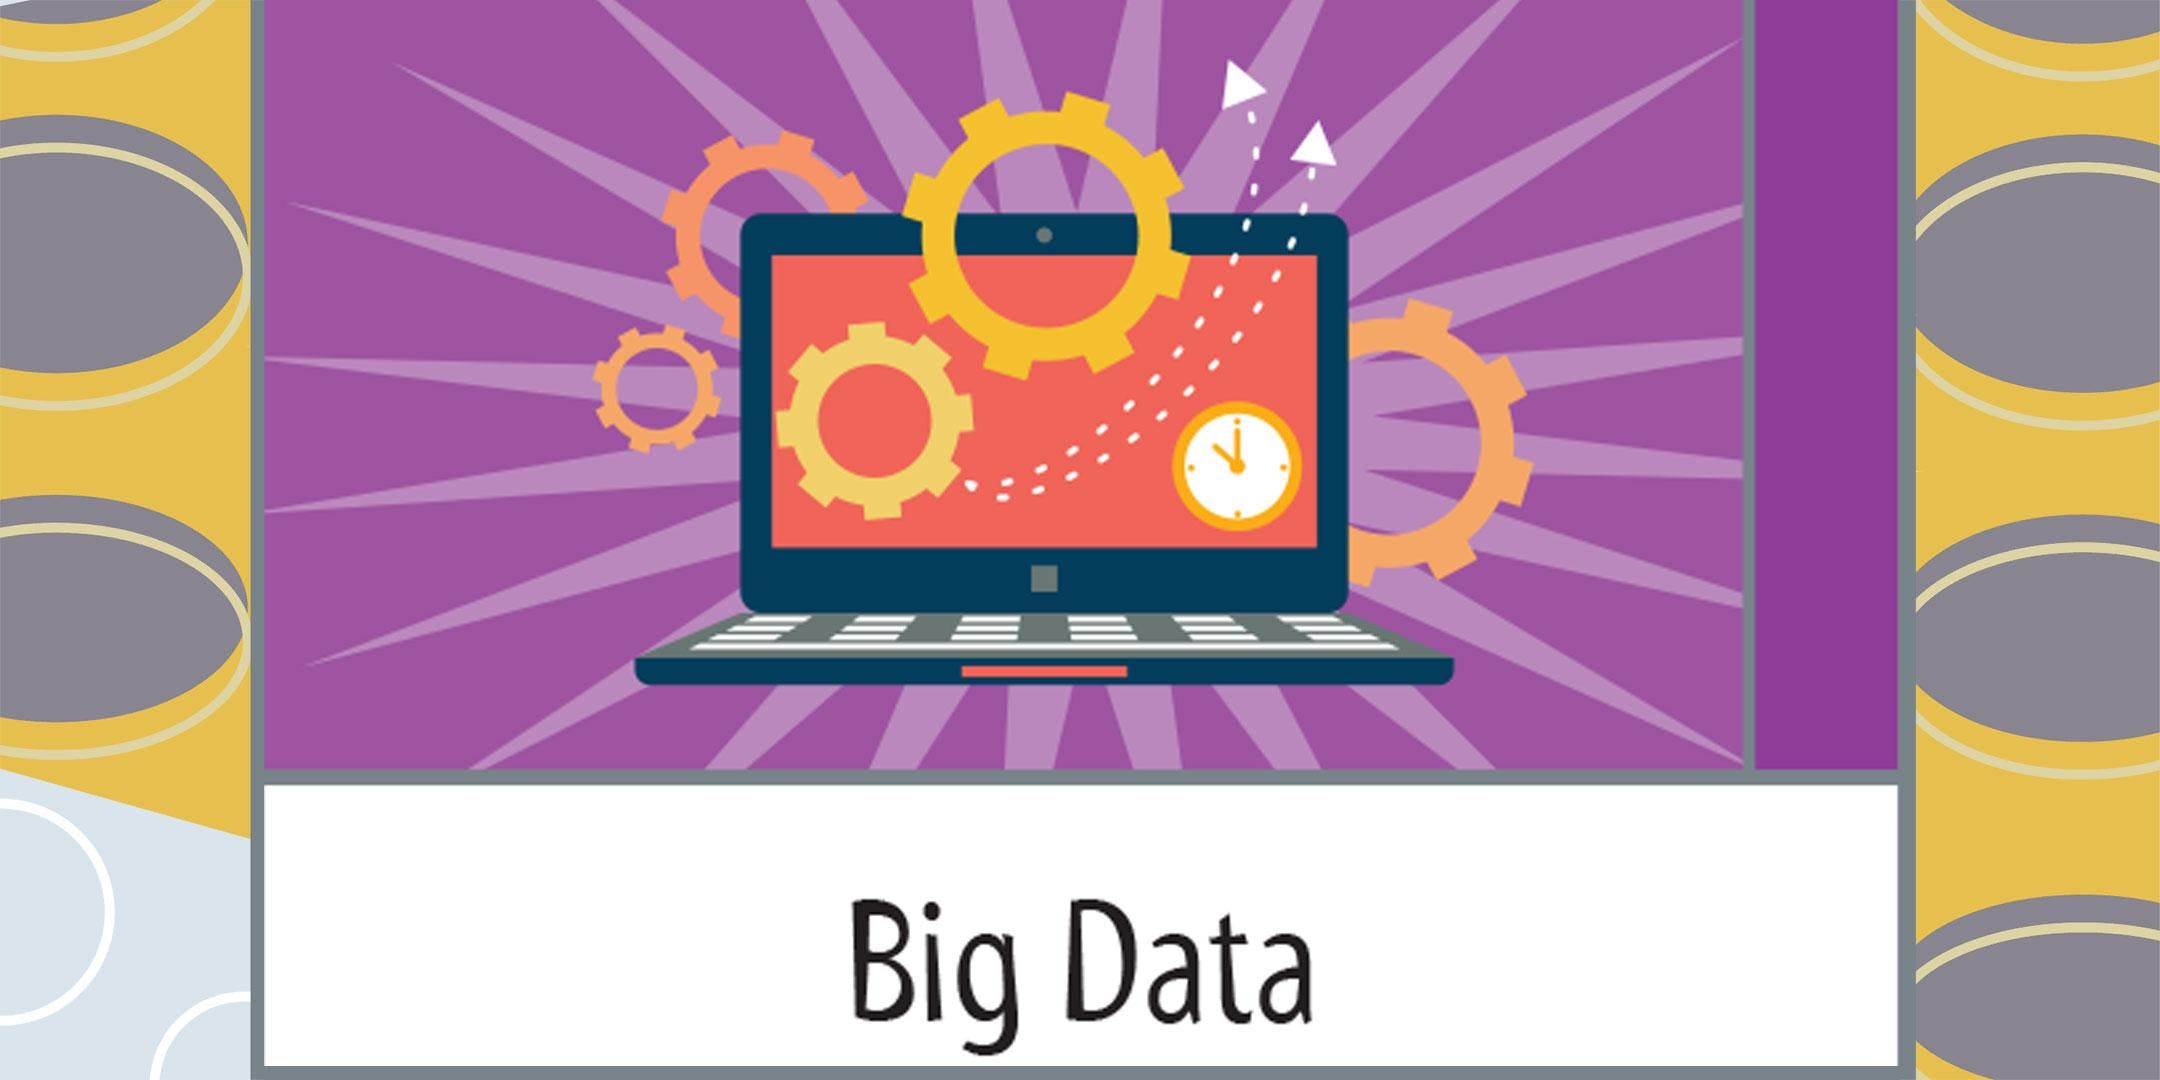 b53453042aac Big Data Science Saturday   11 AM - Grades 5 and 6 only - 2 MAR 2019